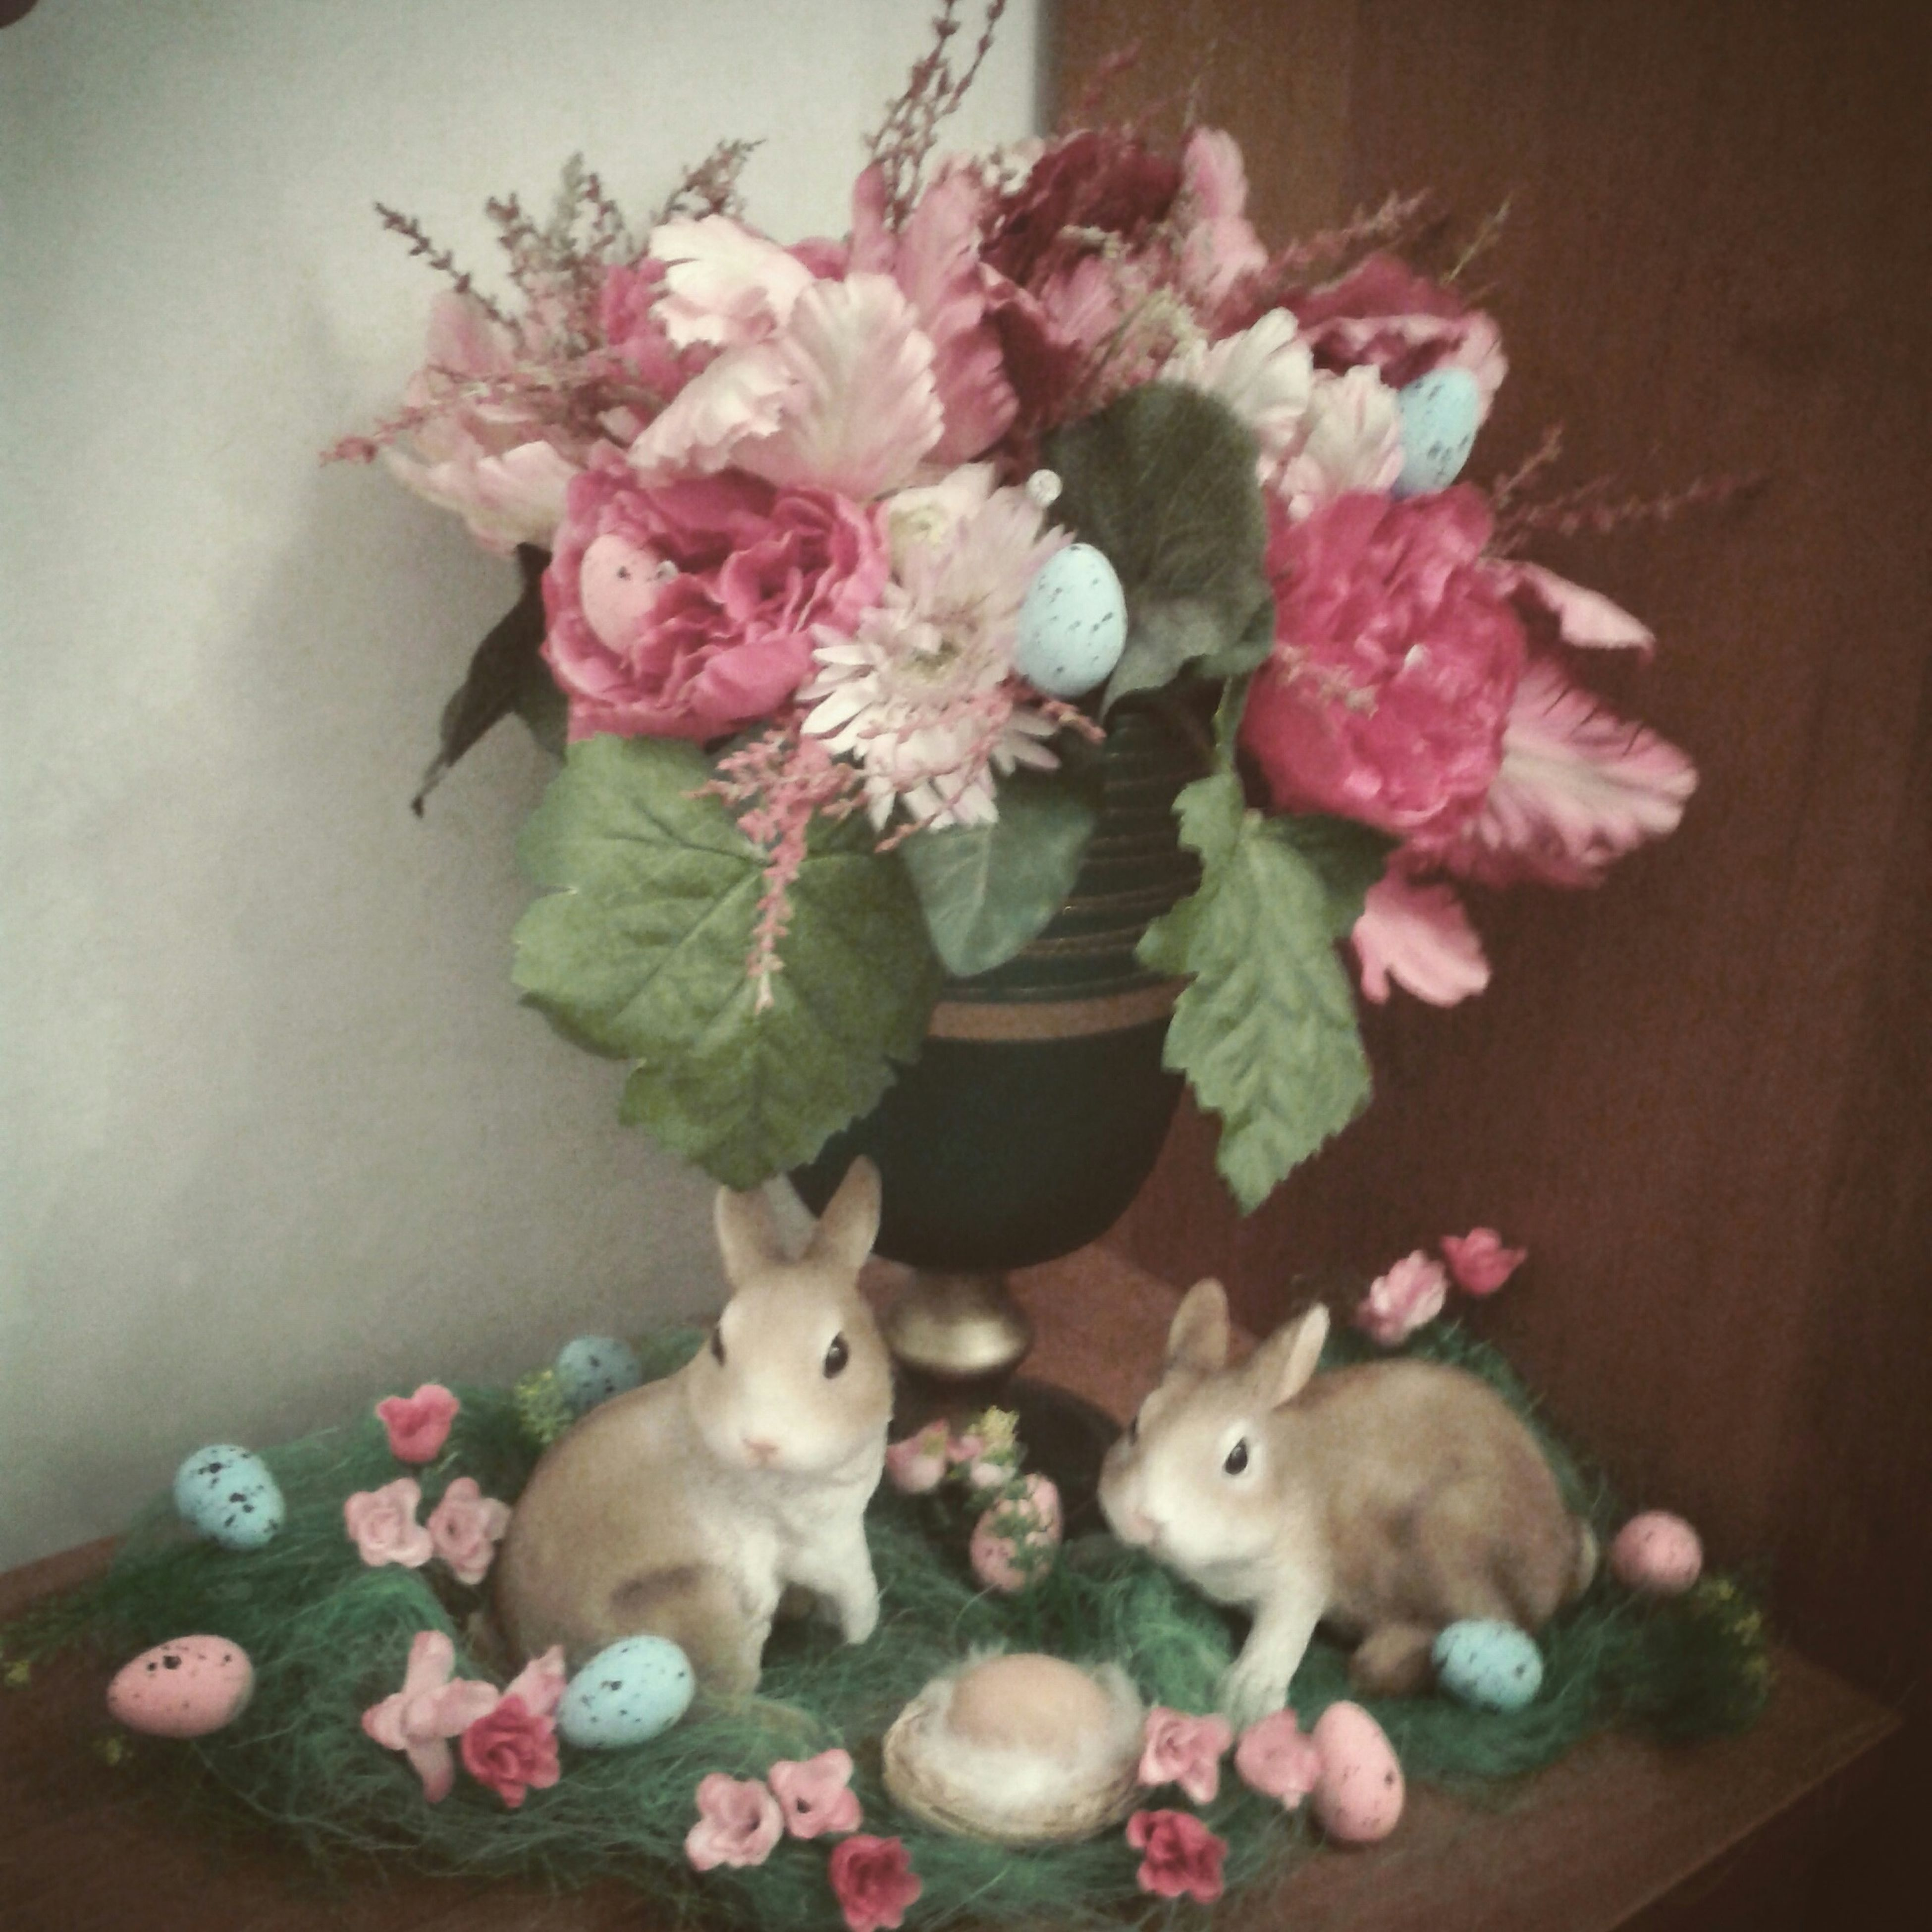 flower, indoors, vase, pink color, fragility, decoration, table, freshness, petal, home interior, animal representation, close-up, no people, still life, high angle view, nature, bunch of flowers, flower arrangement, animal themes, toy